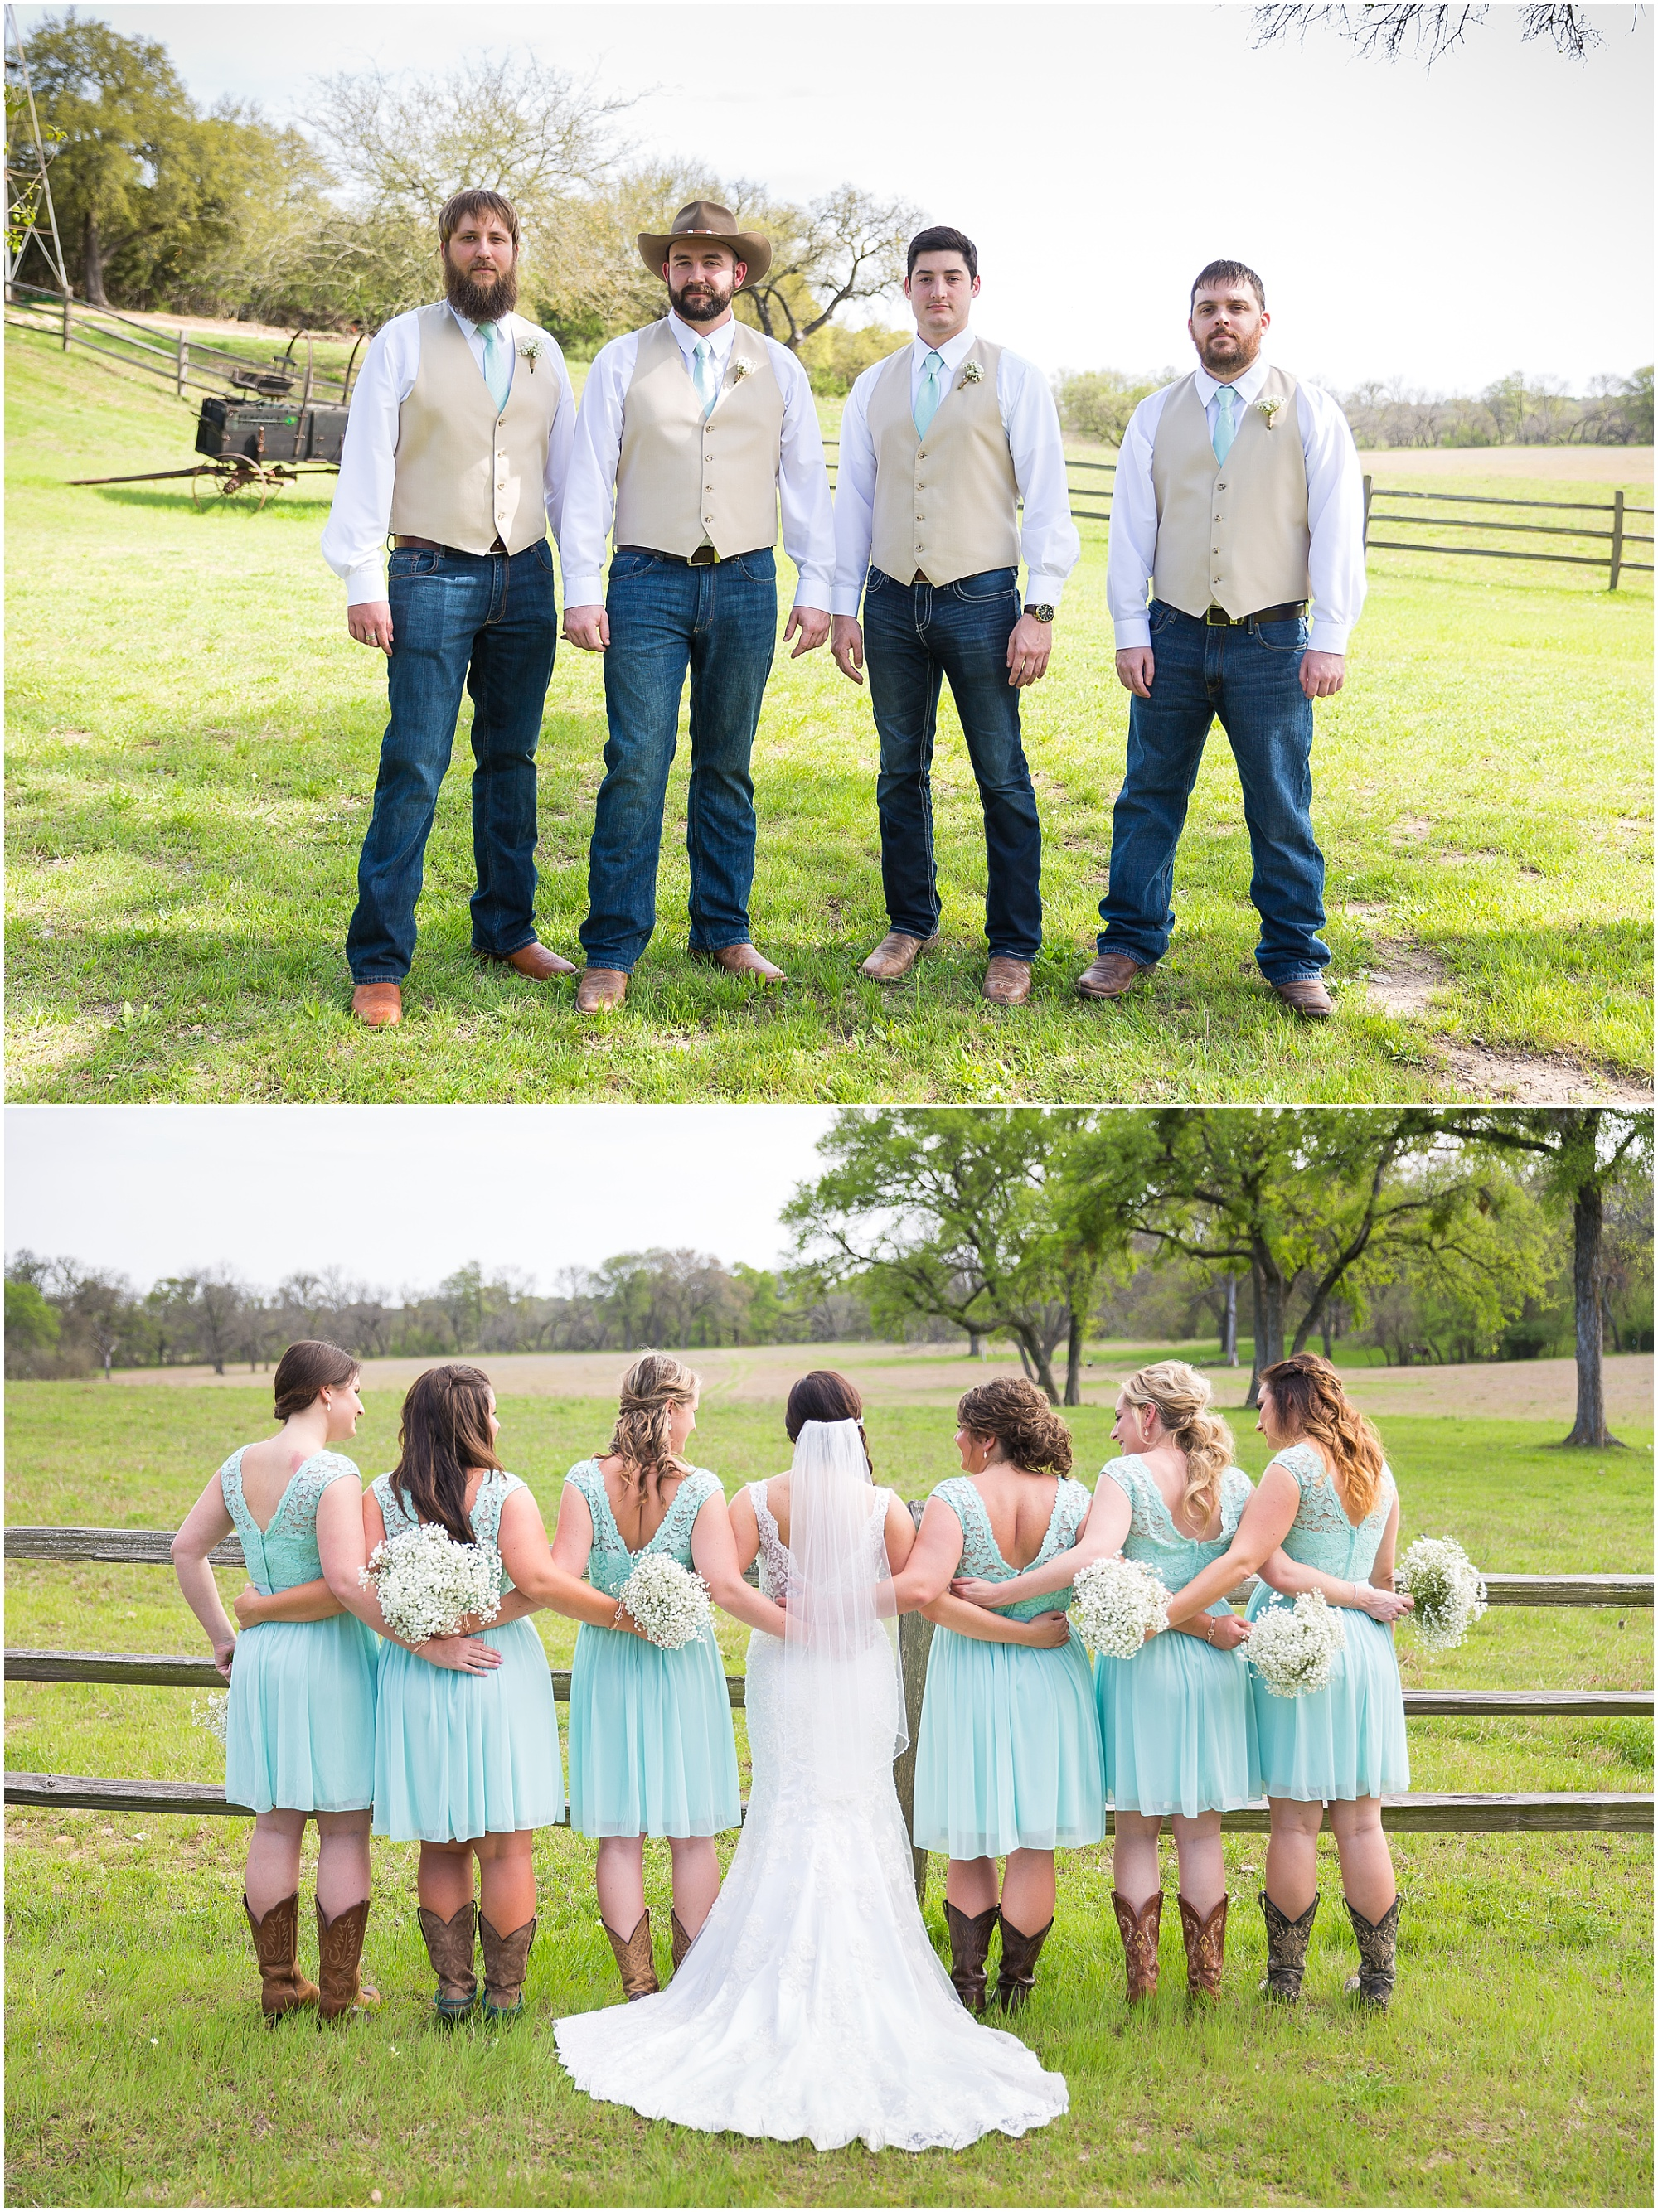 Groomsmen in jeans and tan vests and bridesmaids in turquoise dresses and boots - Rustic wedding at Peacock River Ranch - Jason & Melaina Photography - www.jasonandmelaina.com